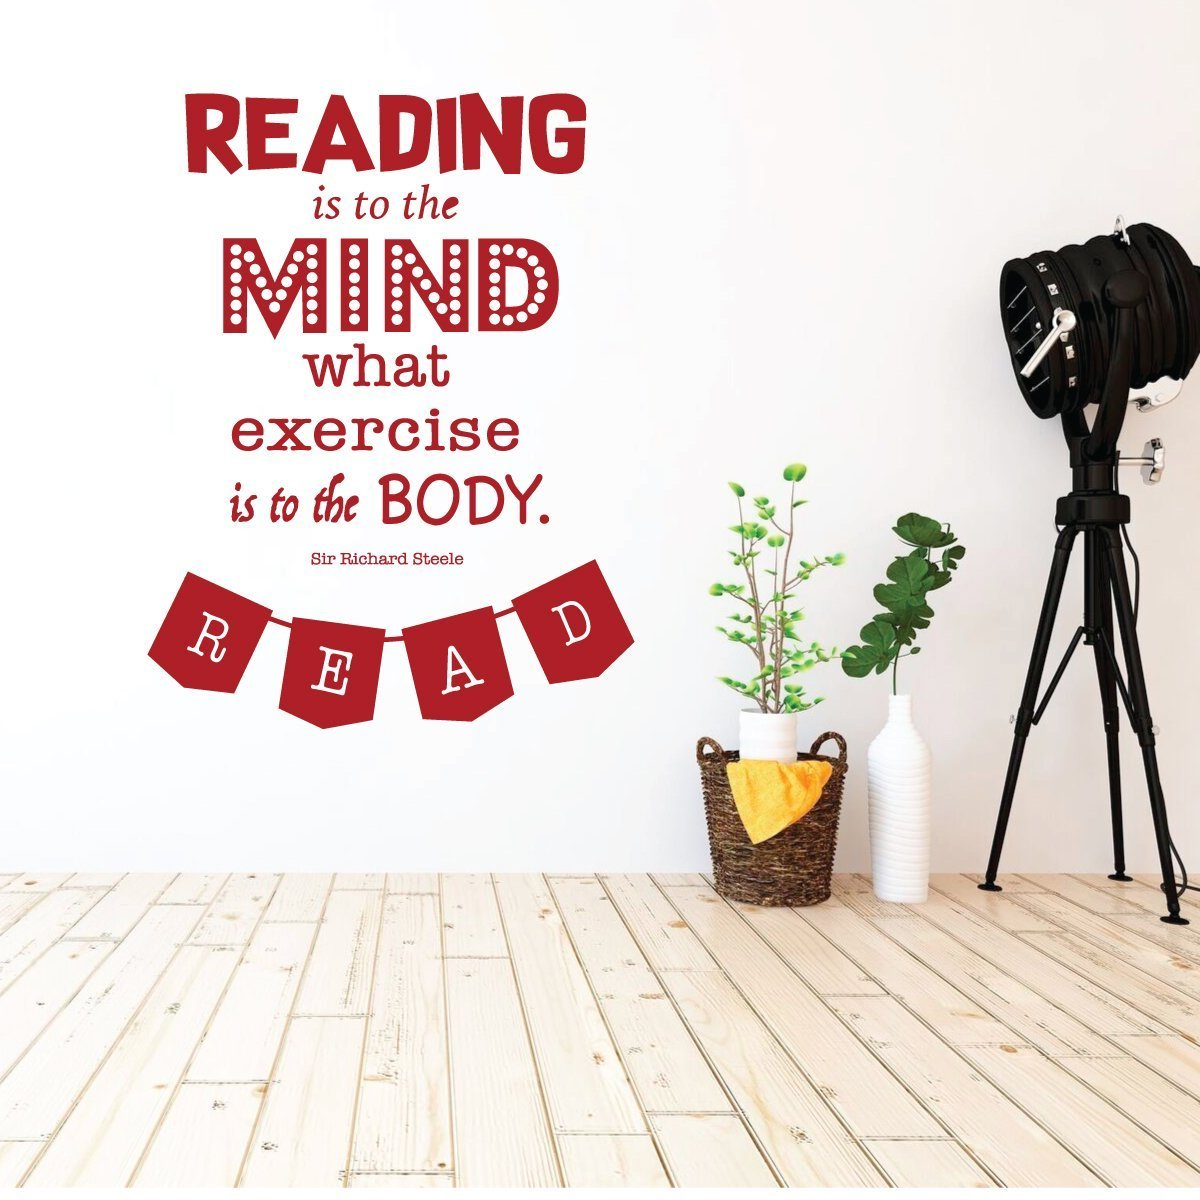 Classroom Decorations for Teachers - Reading is Exercise to the Mind